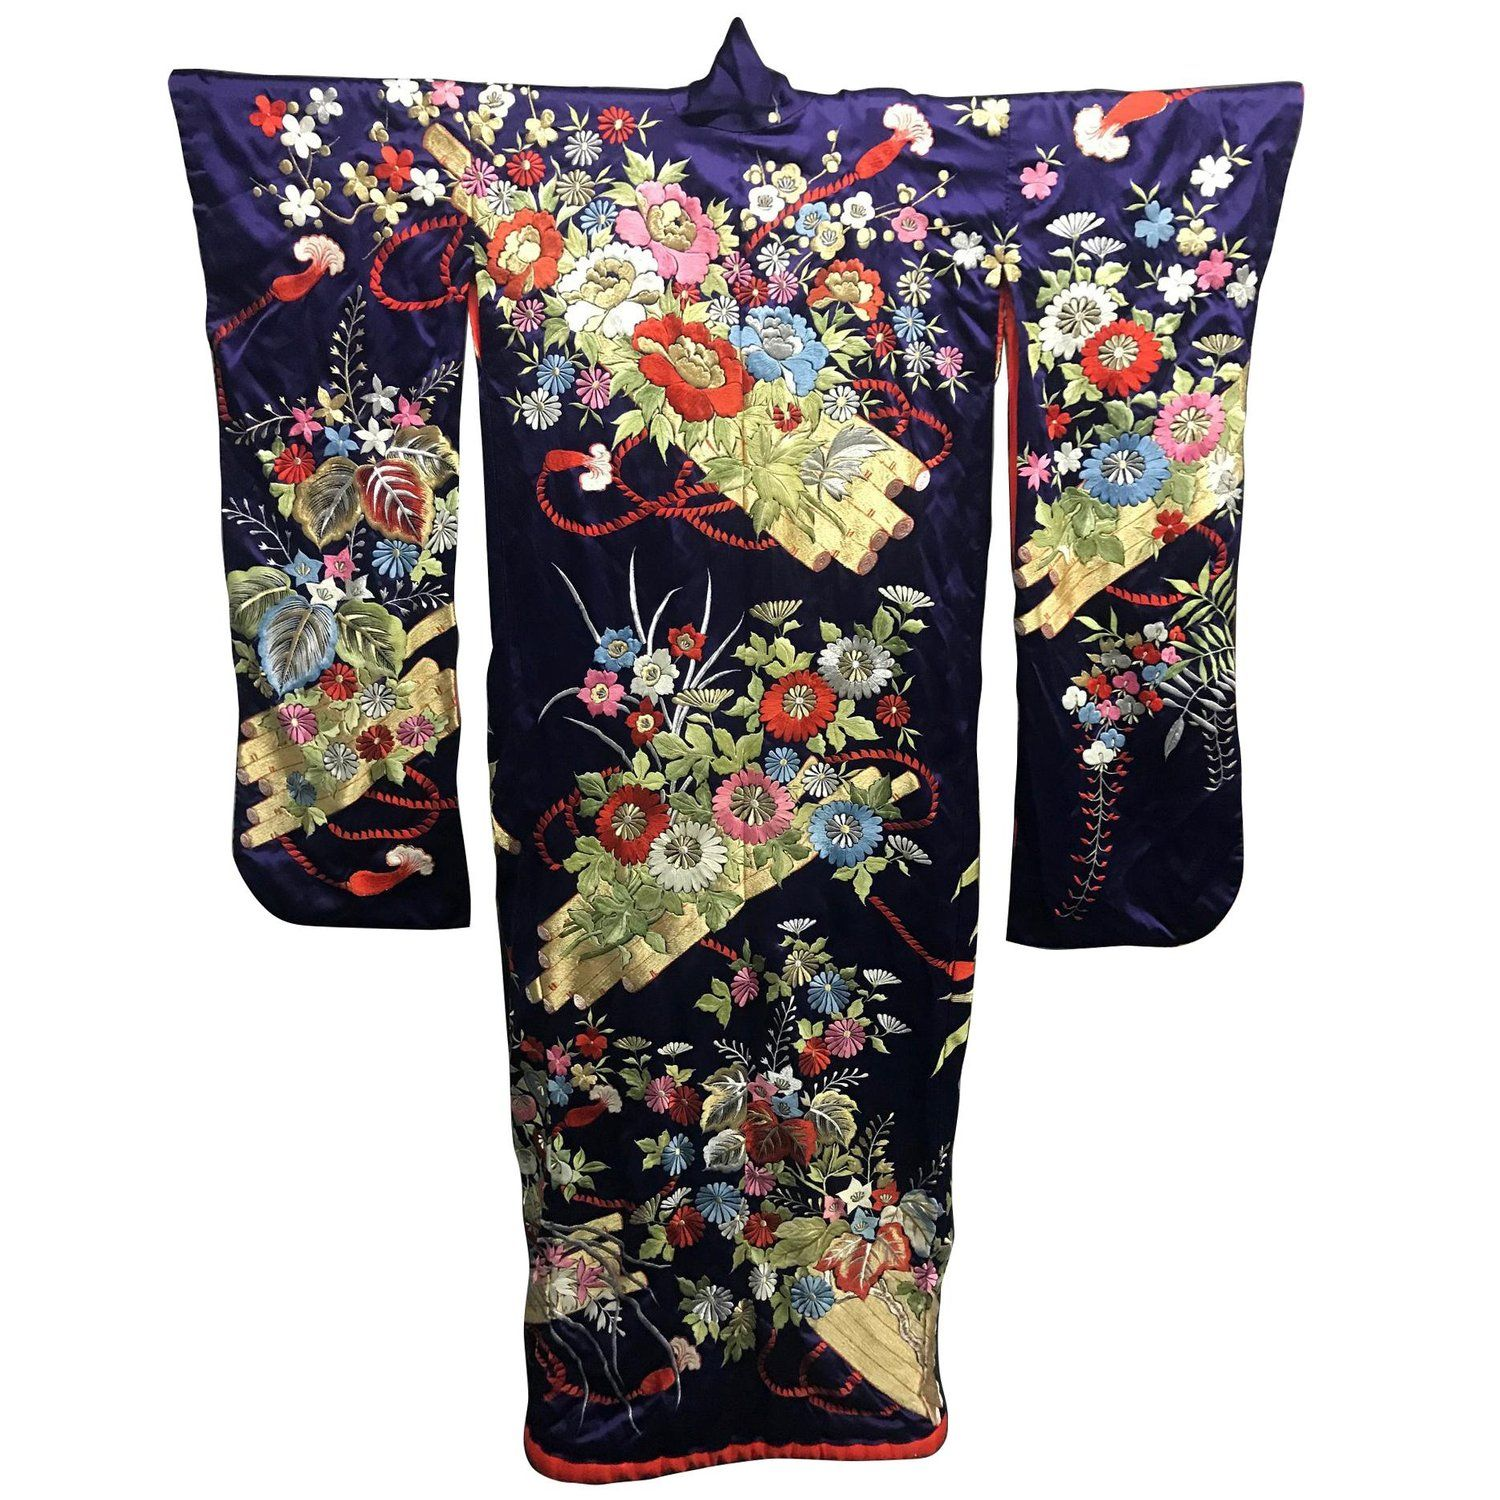 09919a0b94a Exceptional Embroidered Brocade Vintage Japanese Ceremonial Kimono ...